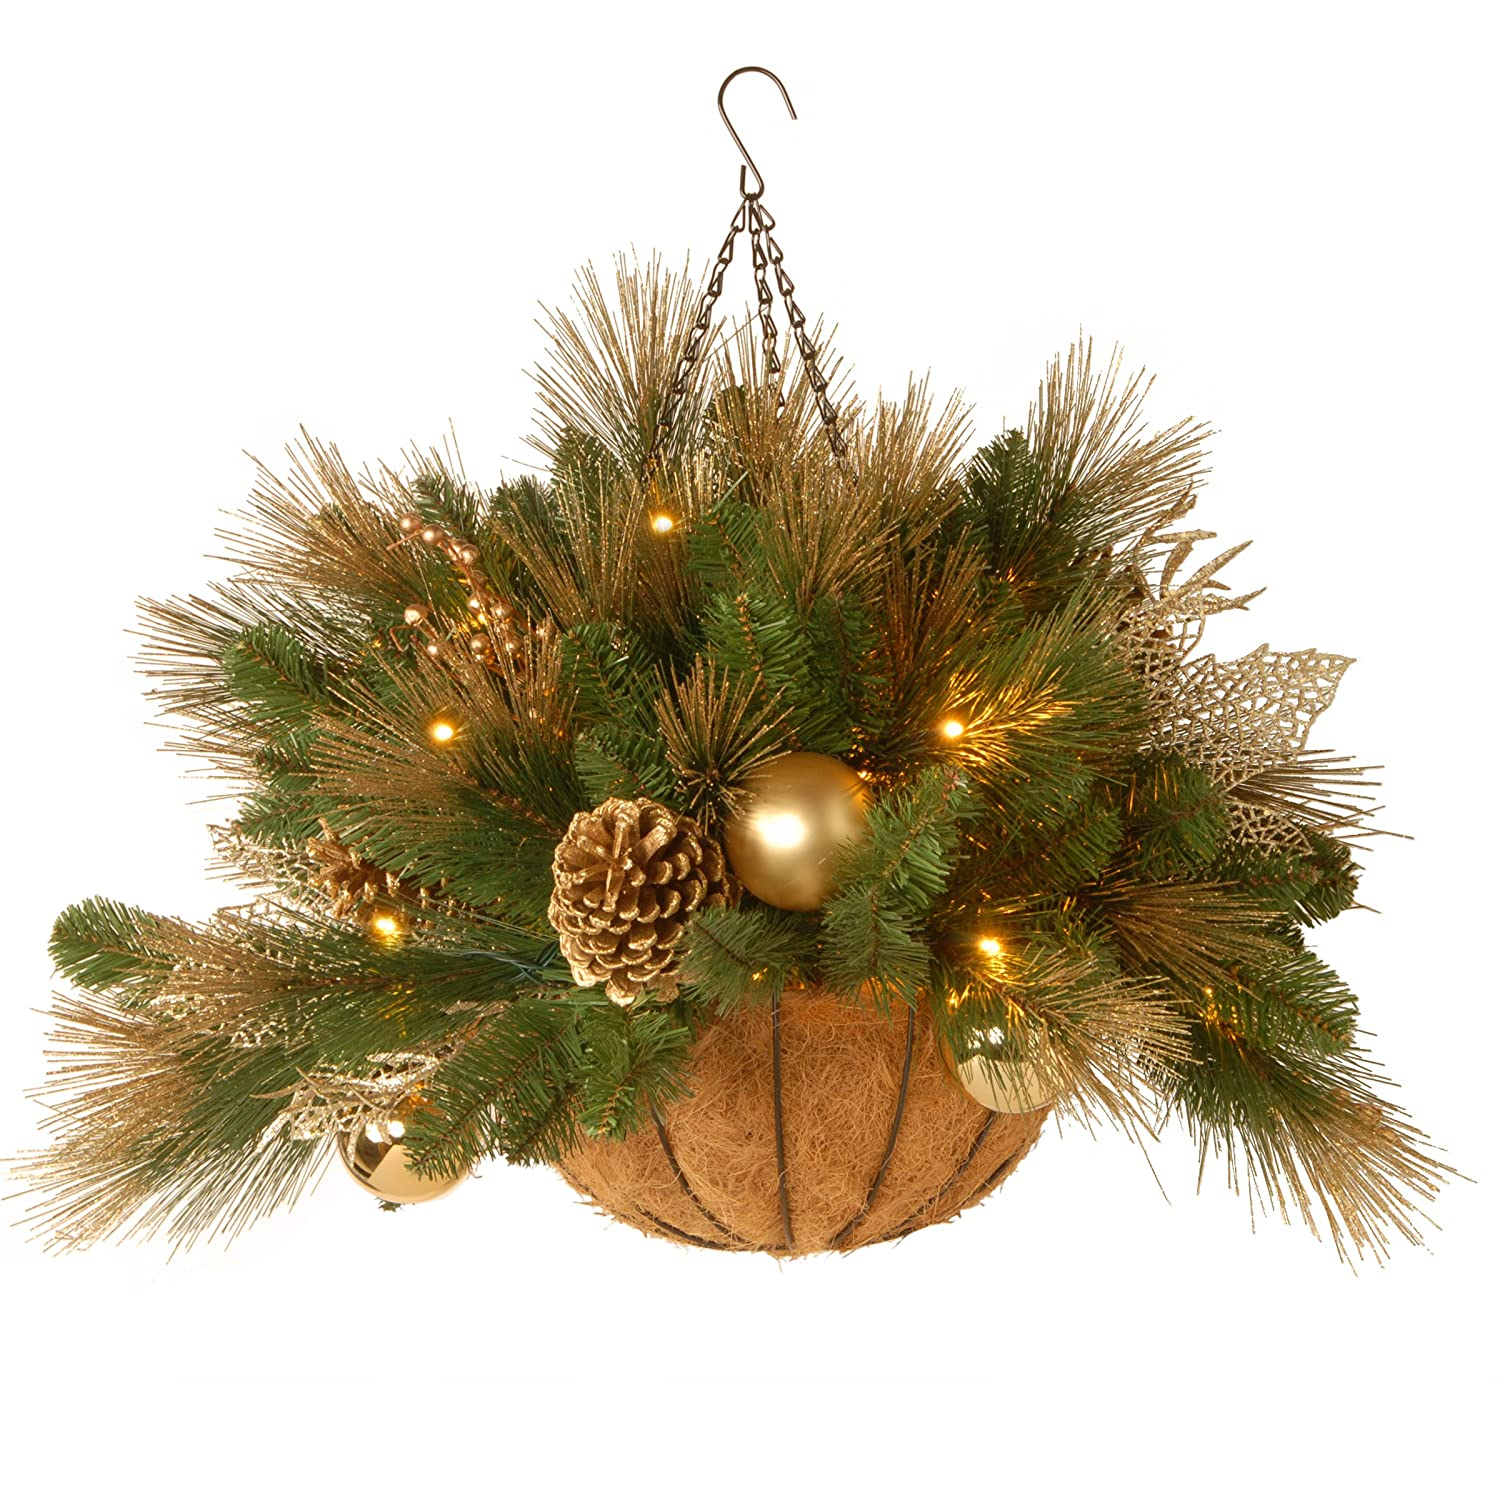 sylvania battery hanging basket with lightscheck price and reviews 919yiwggrdl_sl1500_jpg - Christmas Hanging Baskets